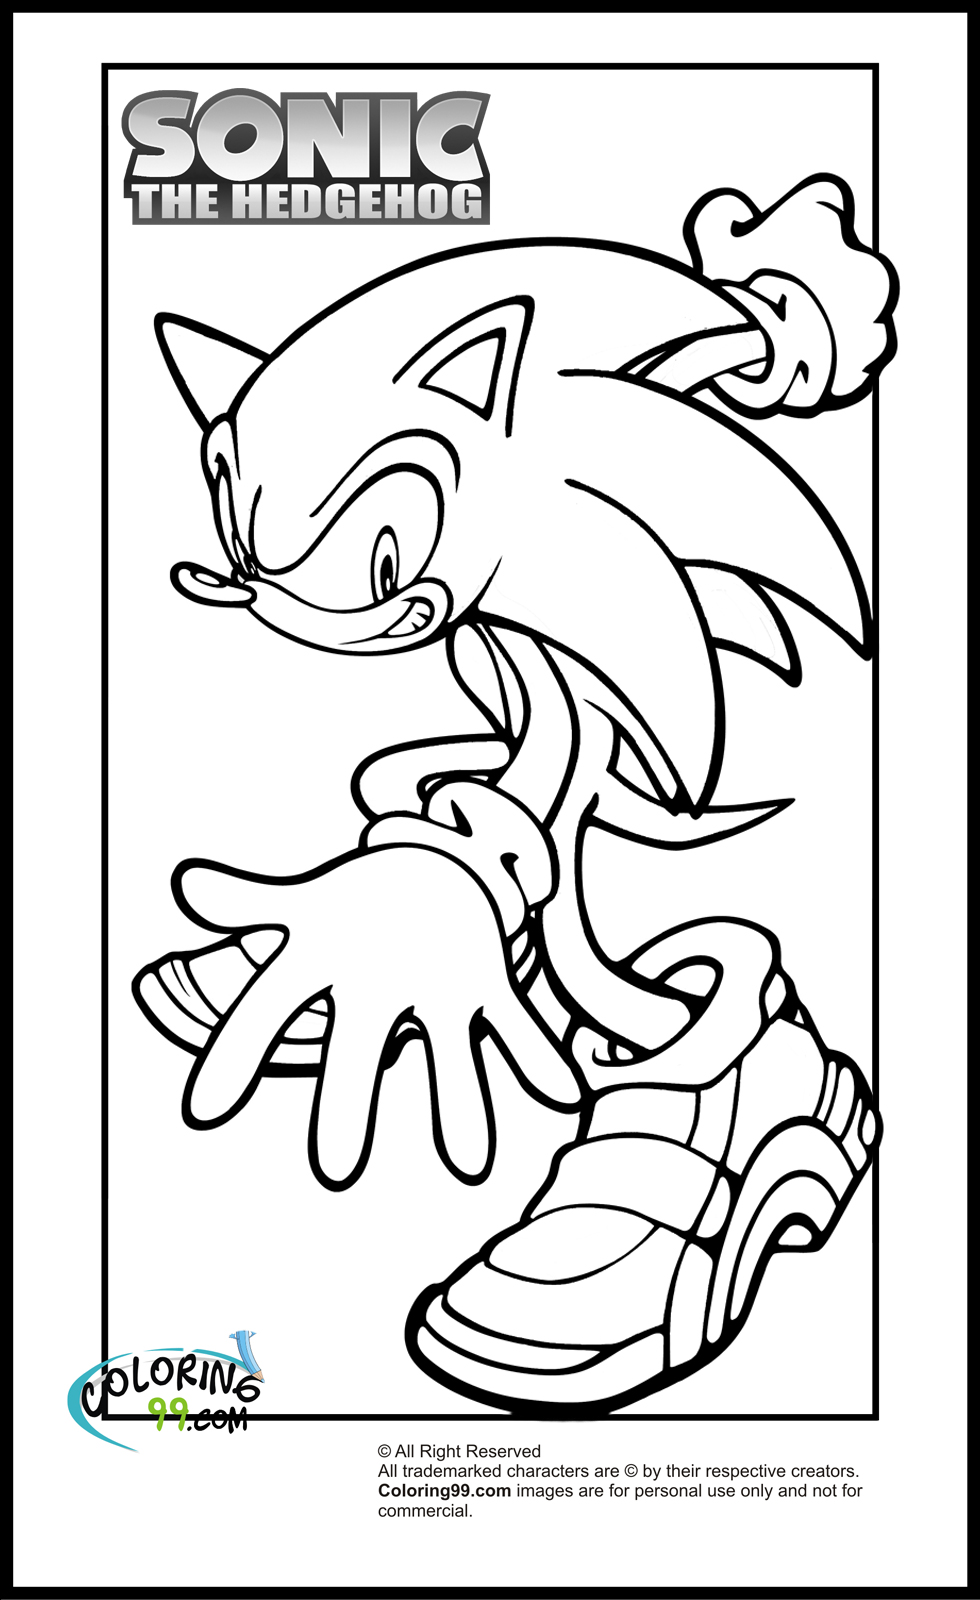 sonic printable coloring pages amazing coloring pages sonic printable coloring pages pages coloring sonic printable